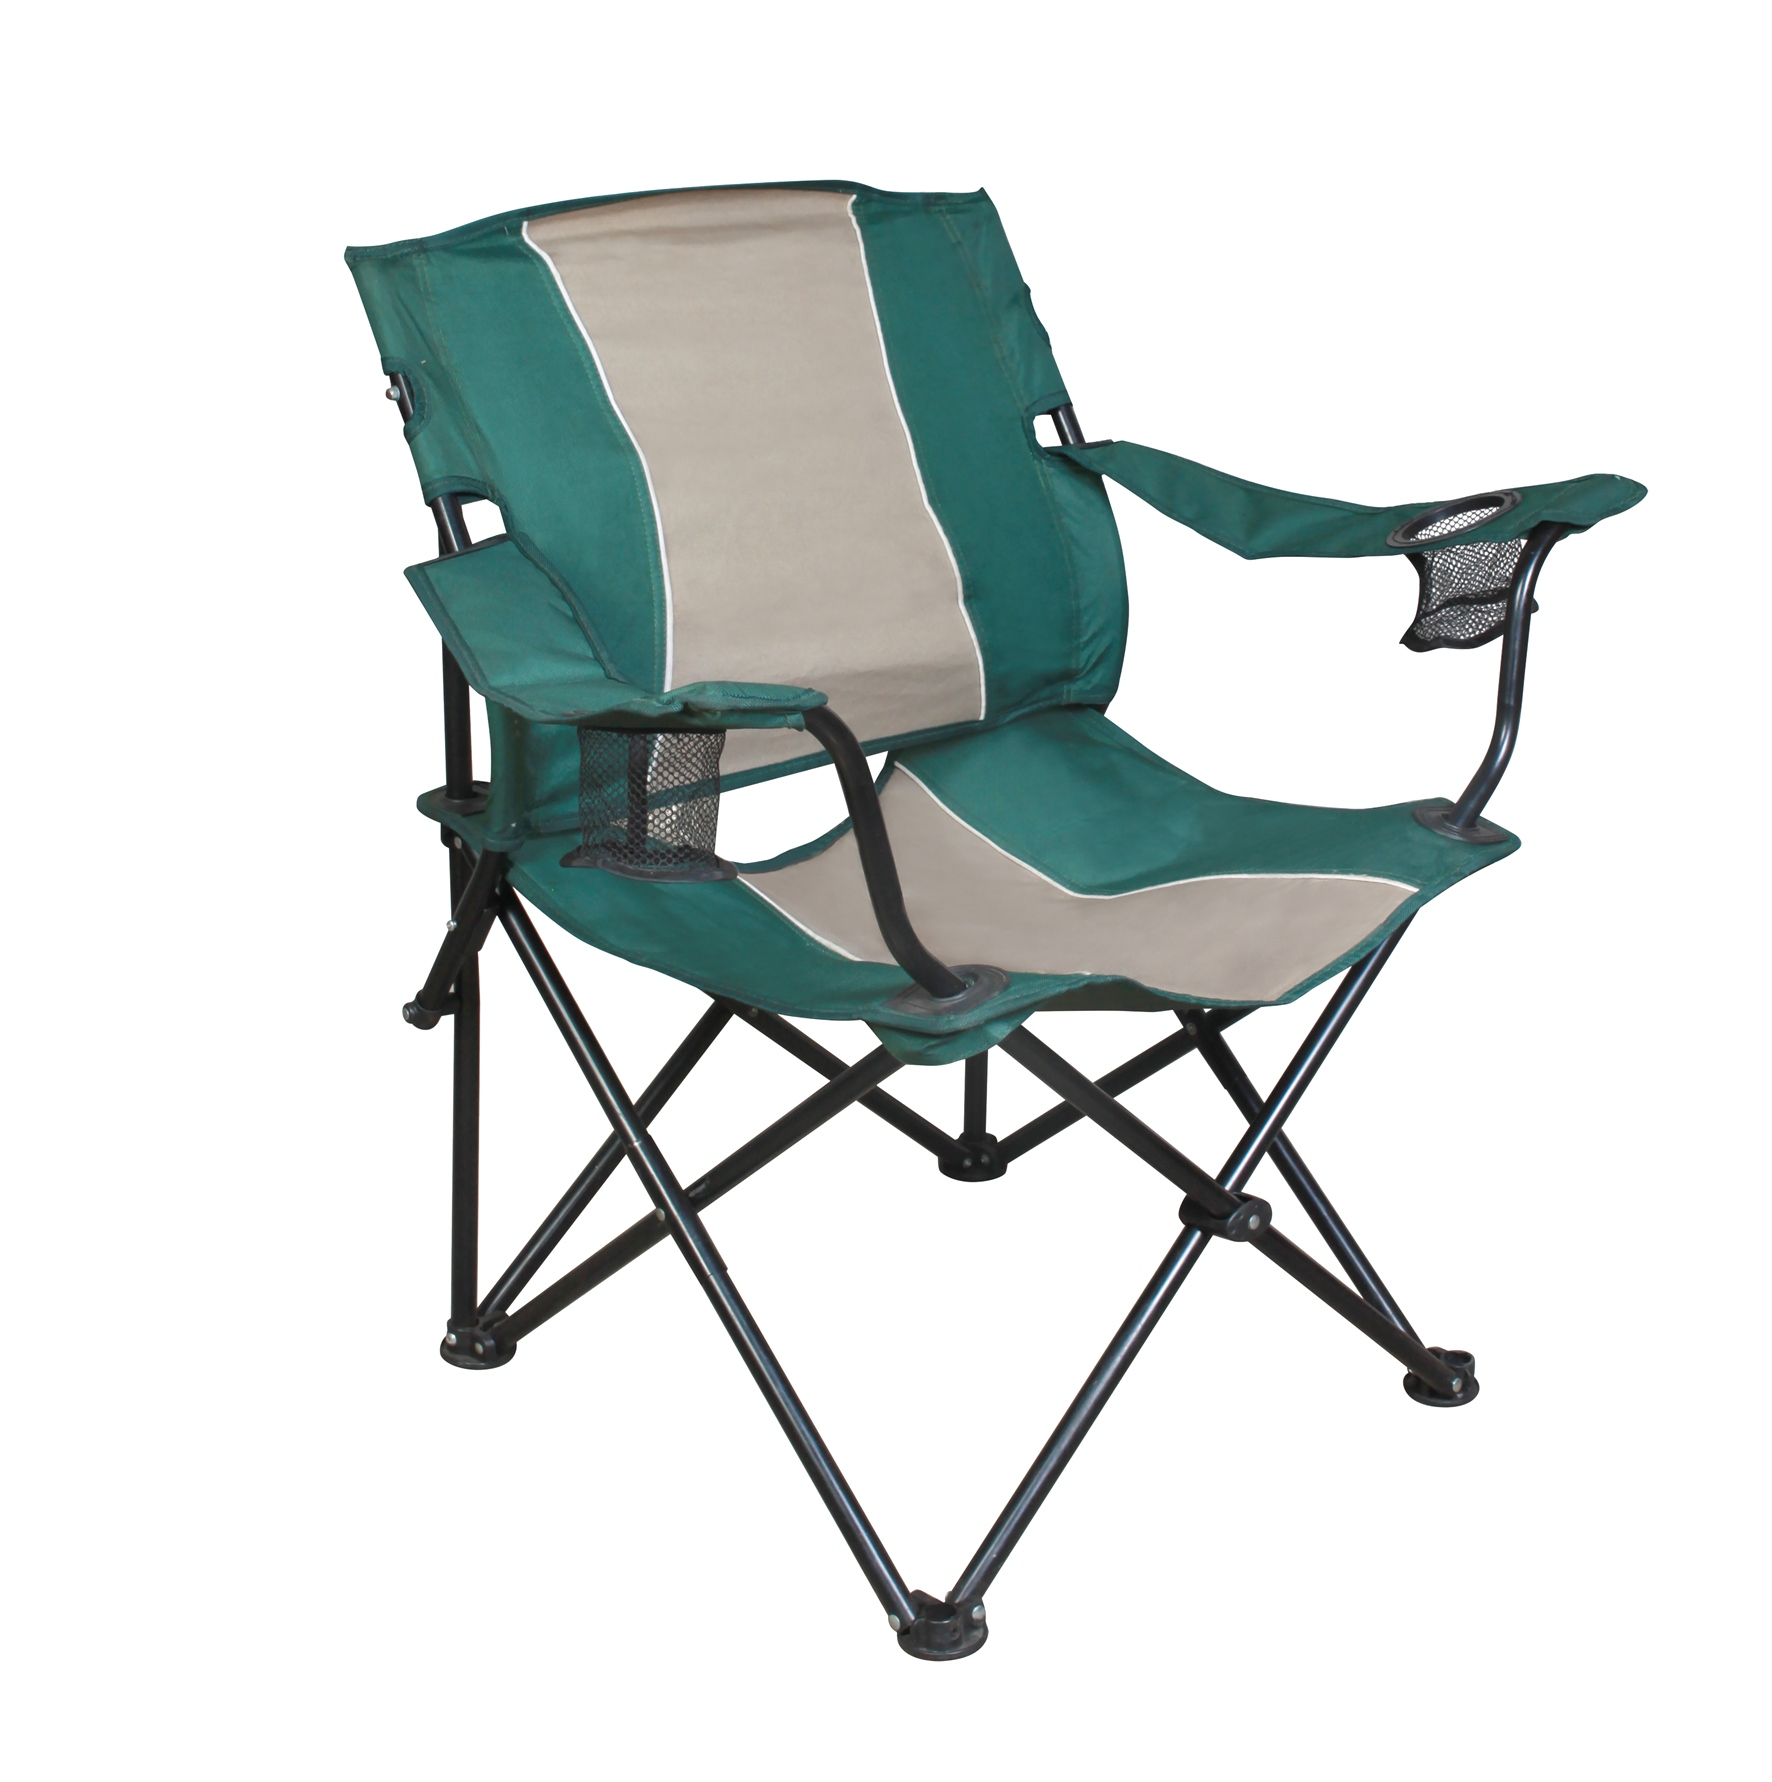 Directors Chair With Side Table Northwest Territory Director 39s Chair With Fold Up Side